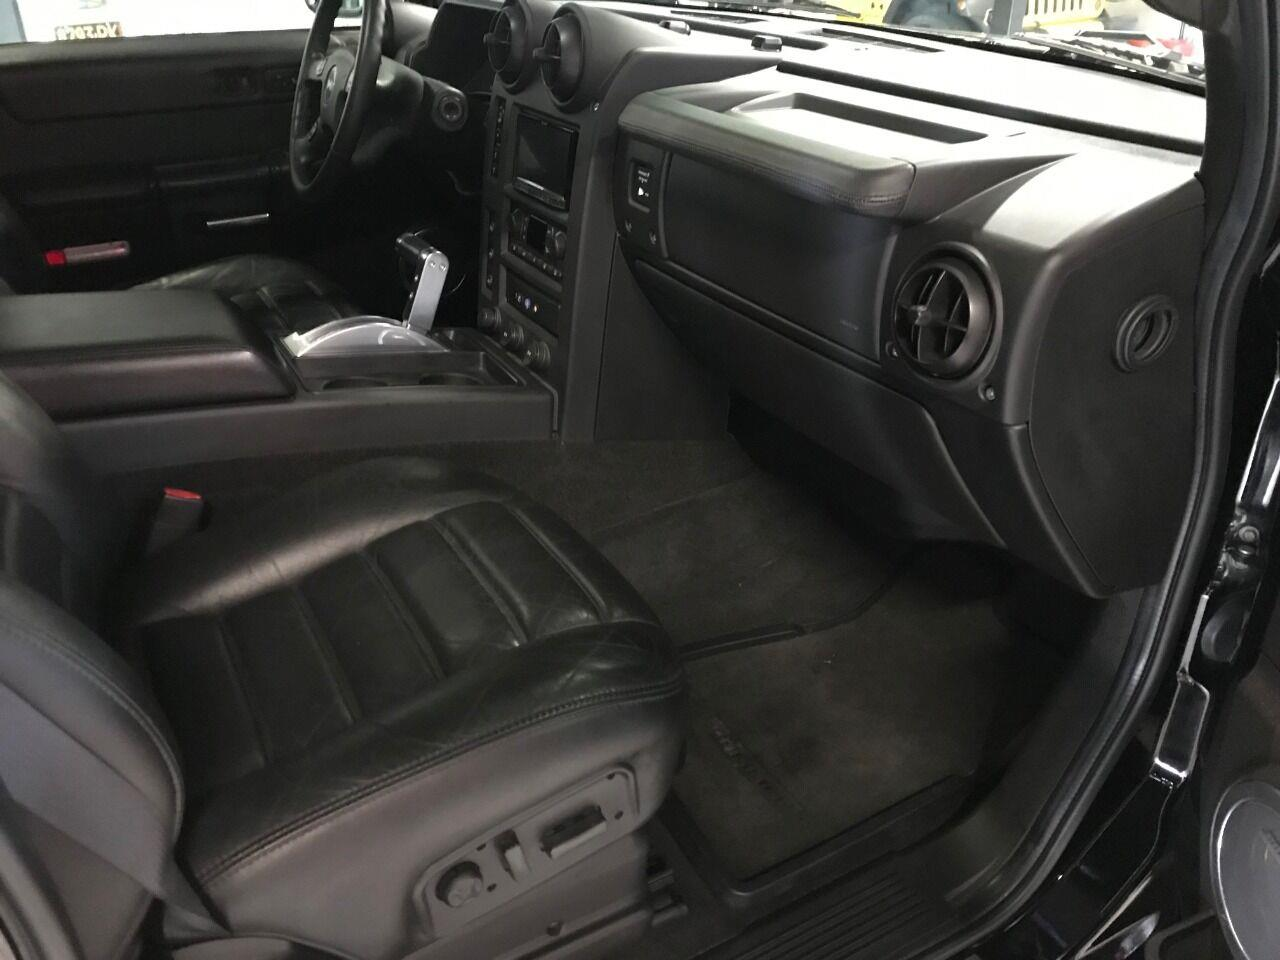 2006 Hummer H2 (CC-1357523) for sale in Boca Raton, Florida